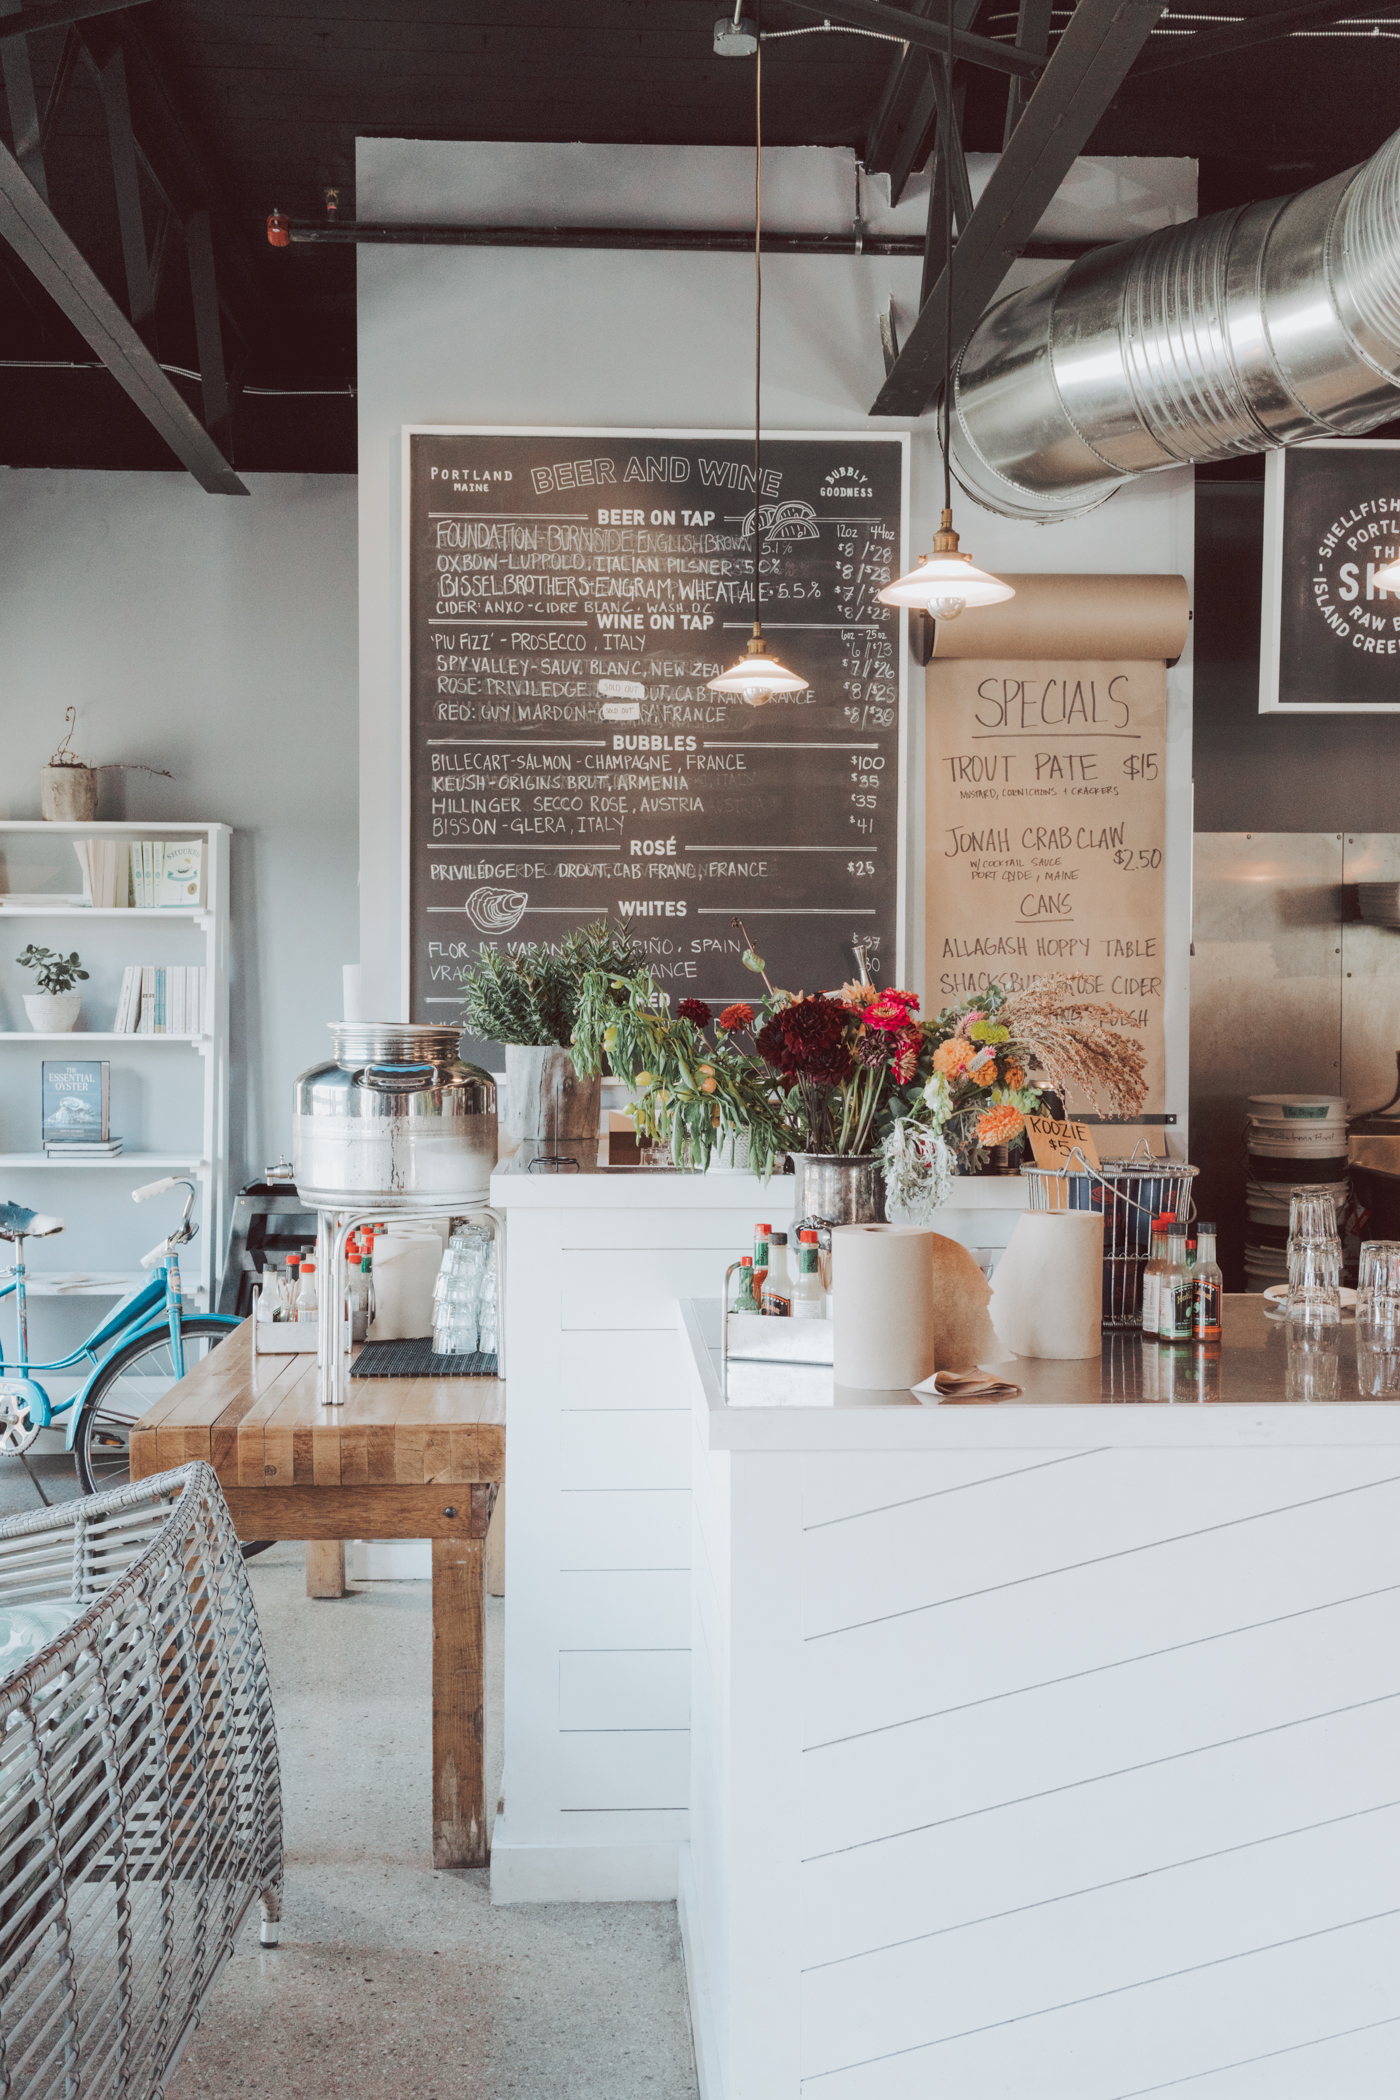 Complete Food Guide to Portland Maine - Where to eat and wine, best restaurants, best coffee shops, and the best seafood in #Portland #Maine